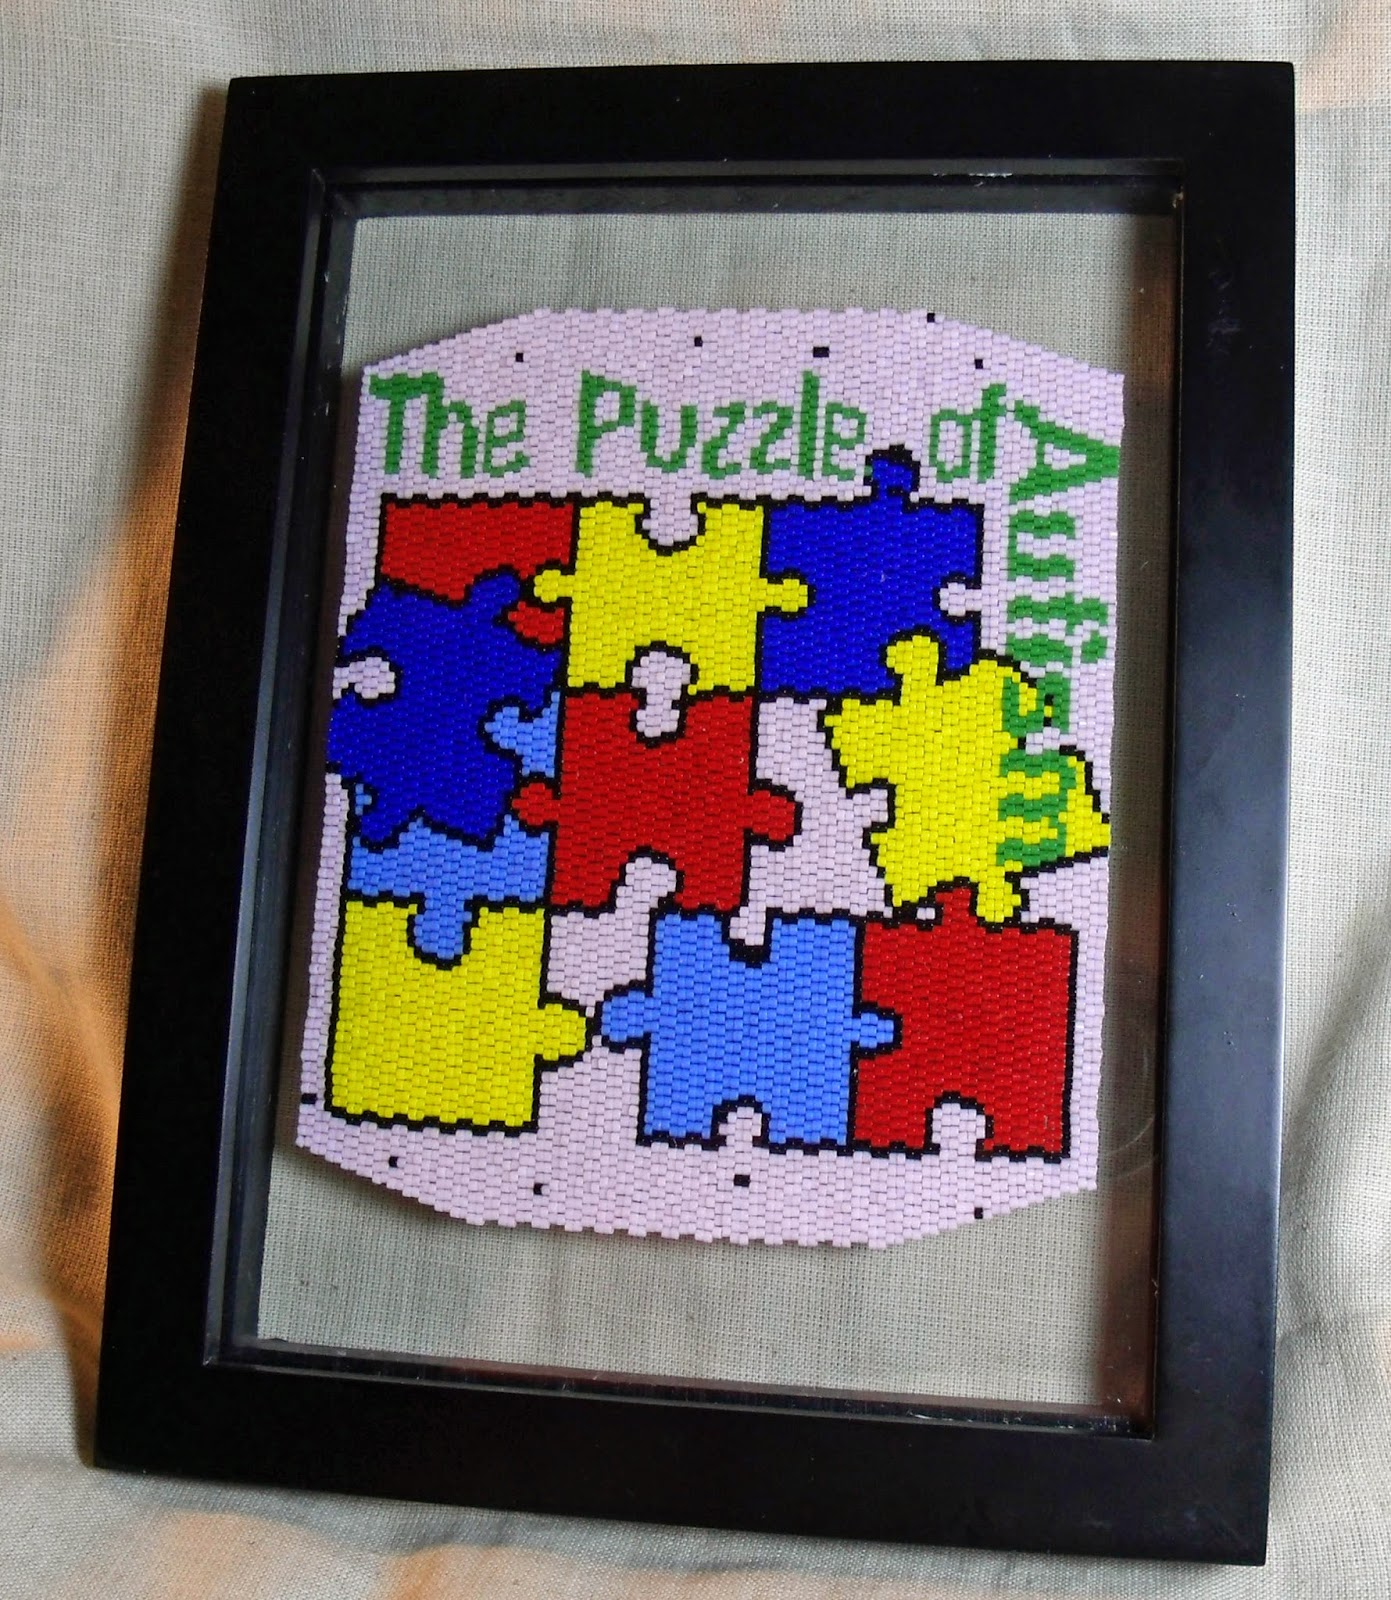 http://www.artfire.com/ext/shop/product_view/KraftyMax/4096681/The_Puzzle_of_Autism_Framed_Fully_Beadwoven_Artwork/Mixed_Media/Wall_Hangings